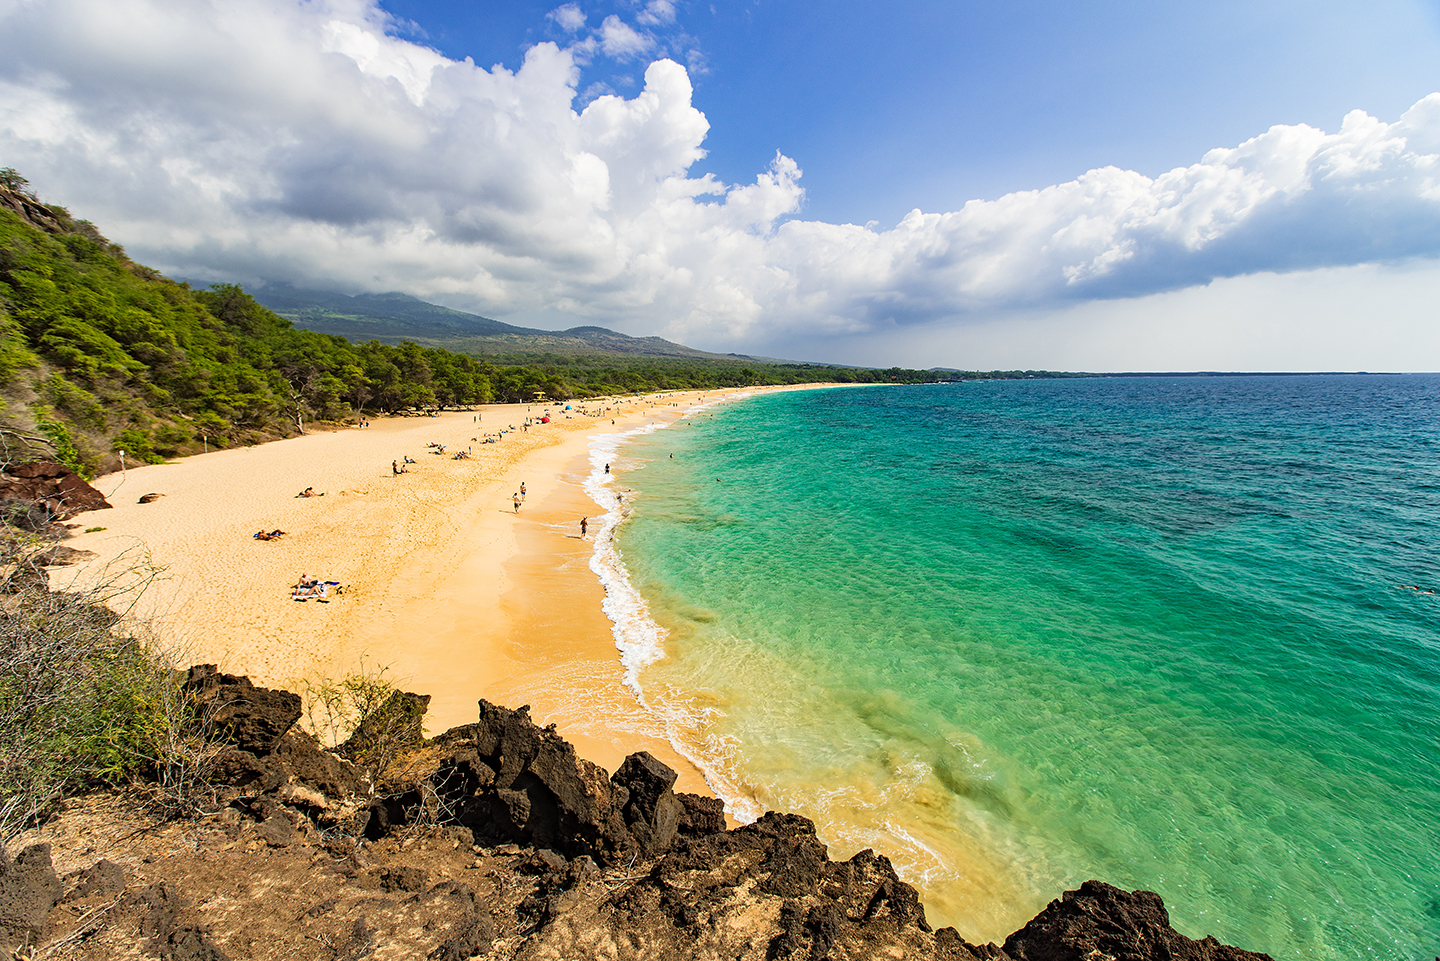 A yellow sandy beach on Maui, Hawaii, with green-blue water on the right and trees on the left.